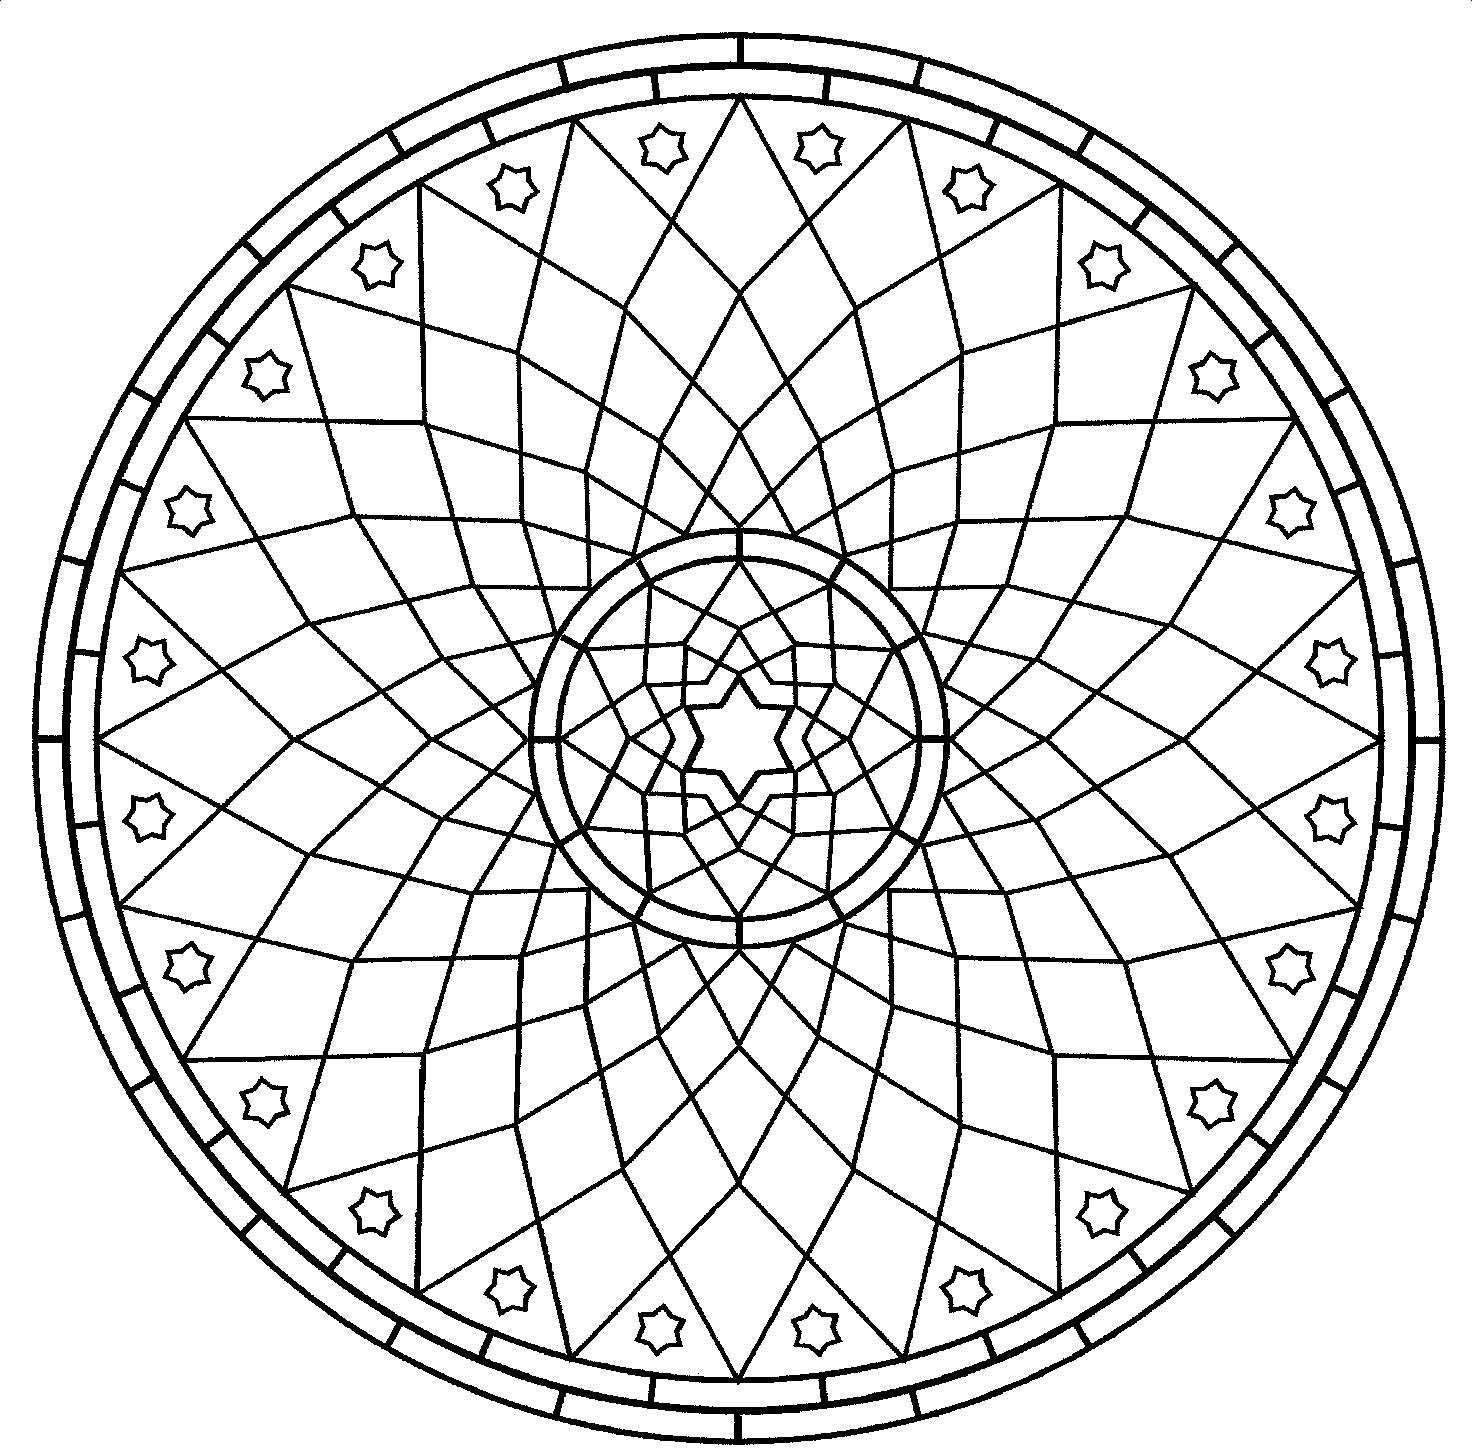 Free Mandala Coloring Pages Free Printable Mandalas For Kids Best Coloring Pages For Kids